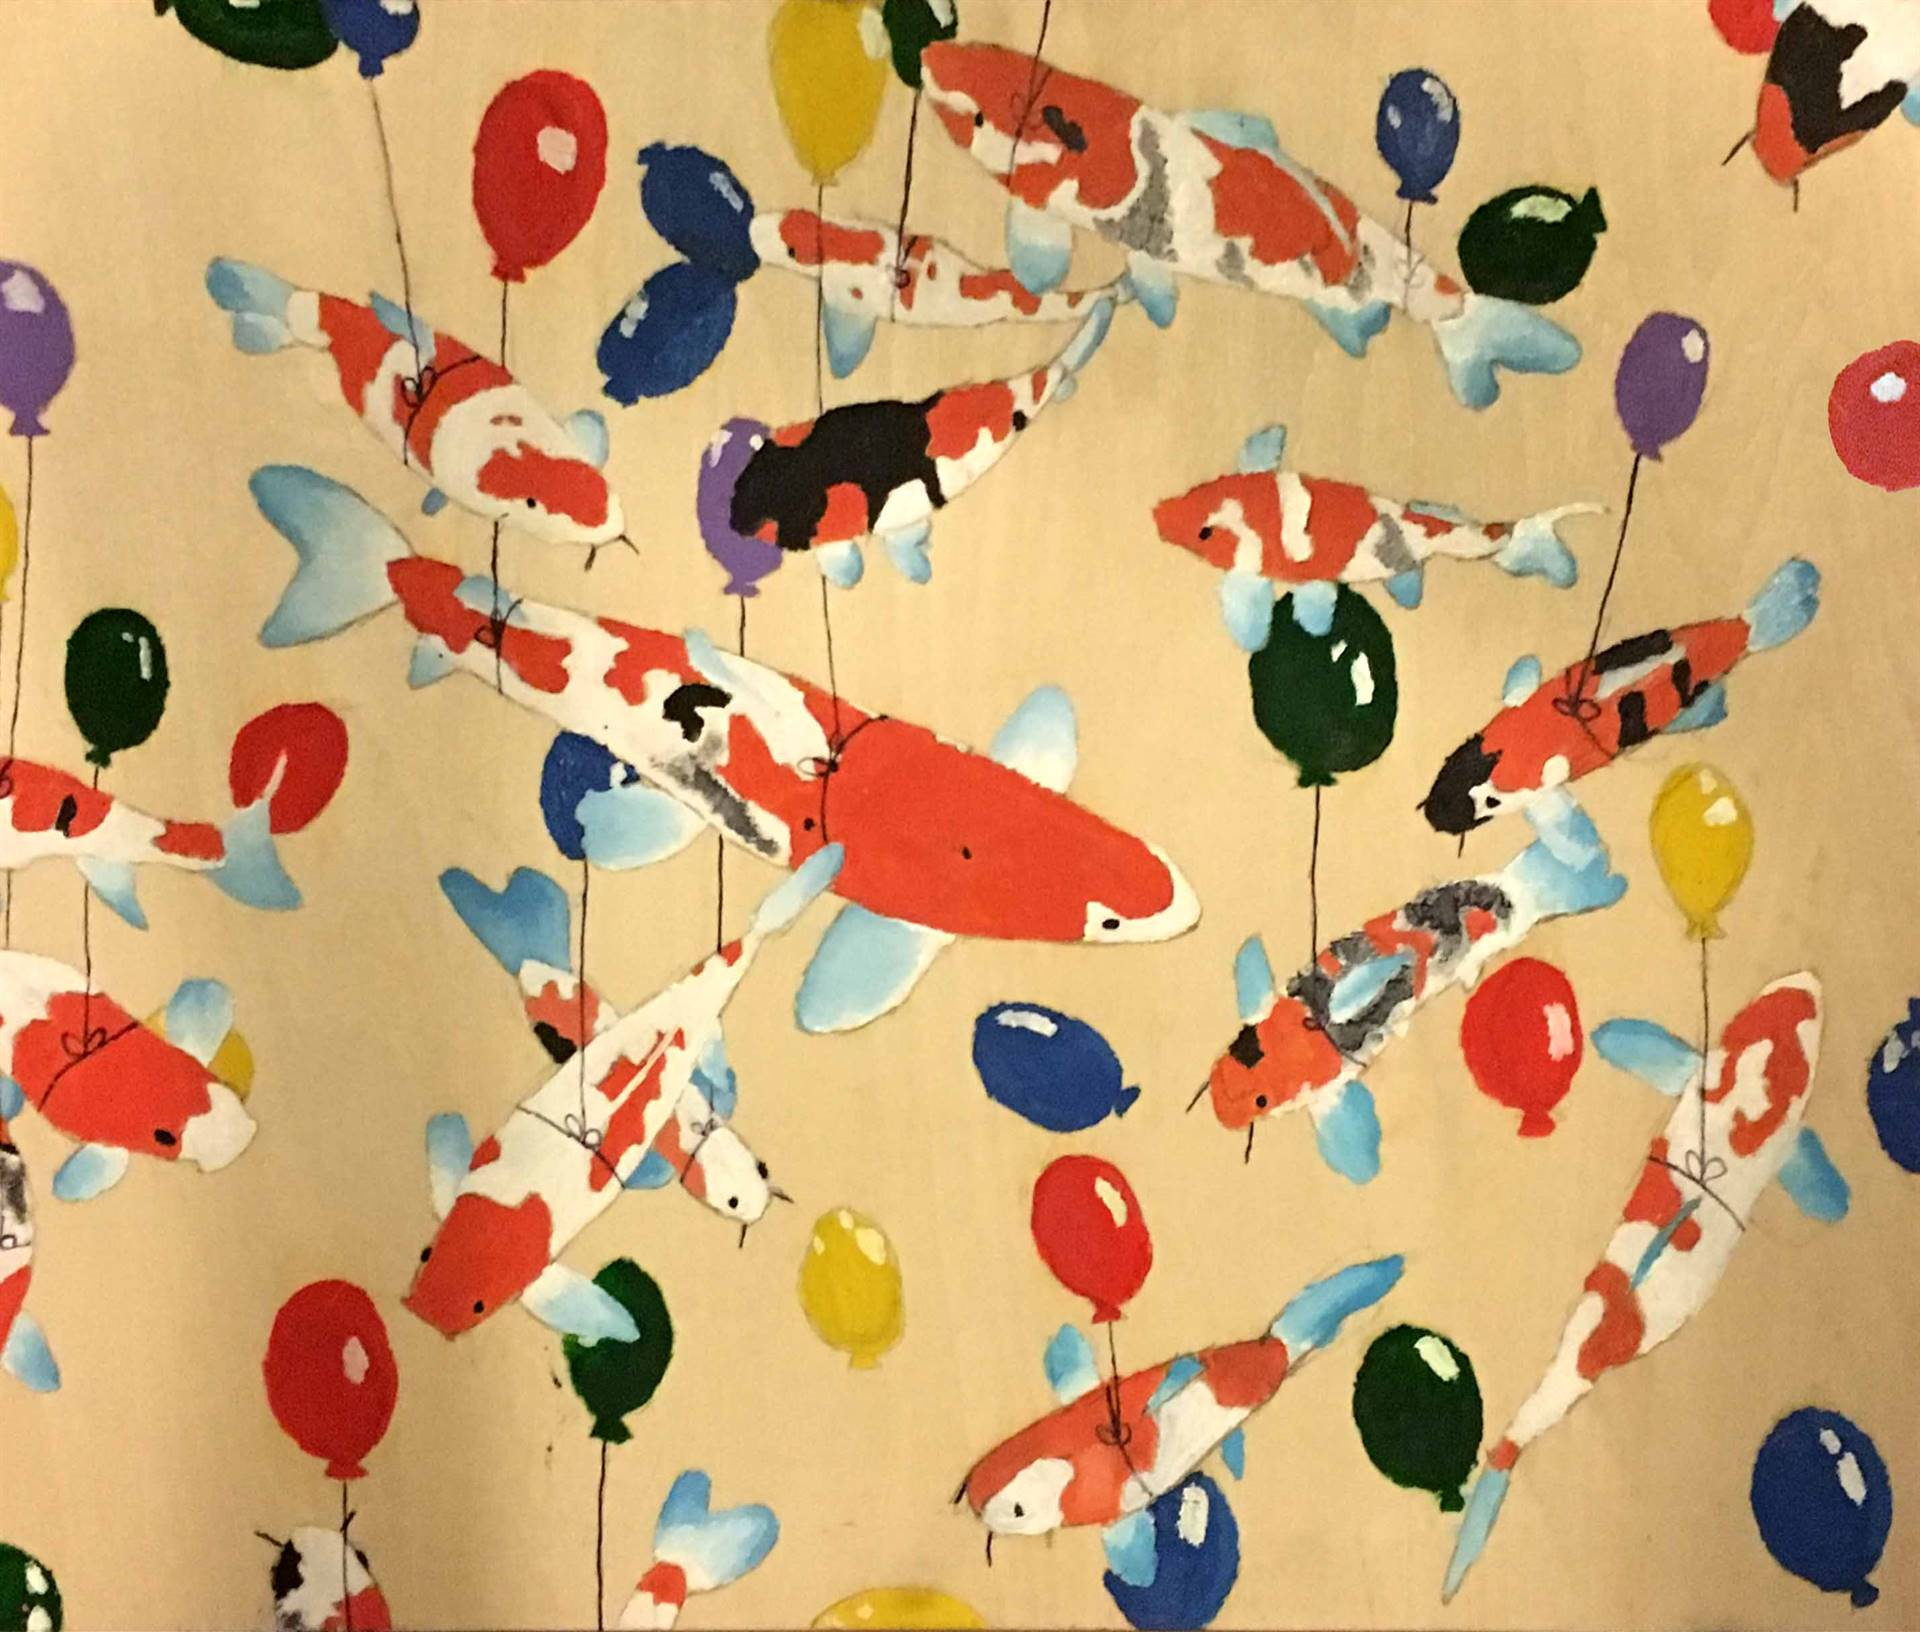 Oil painting of koi fish suspended by balloons